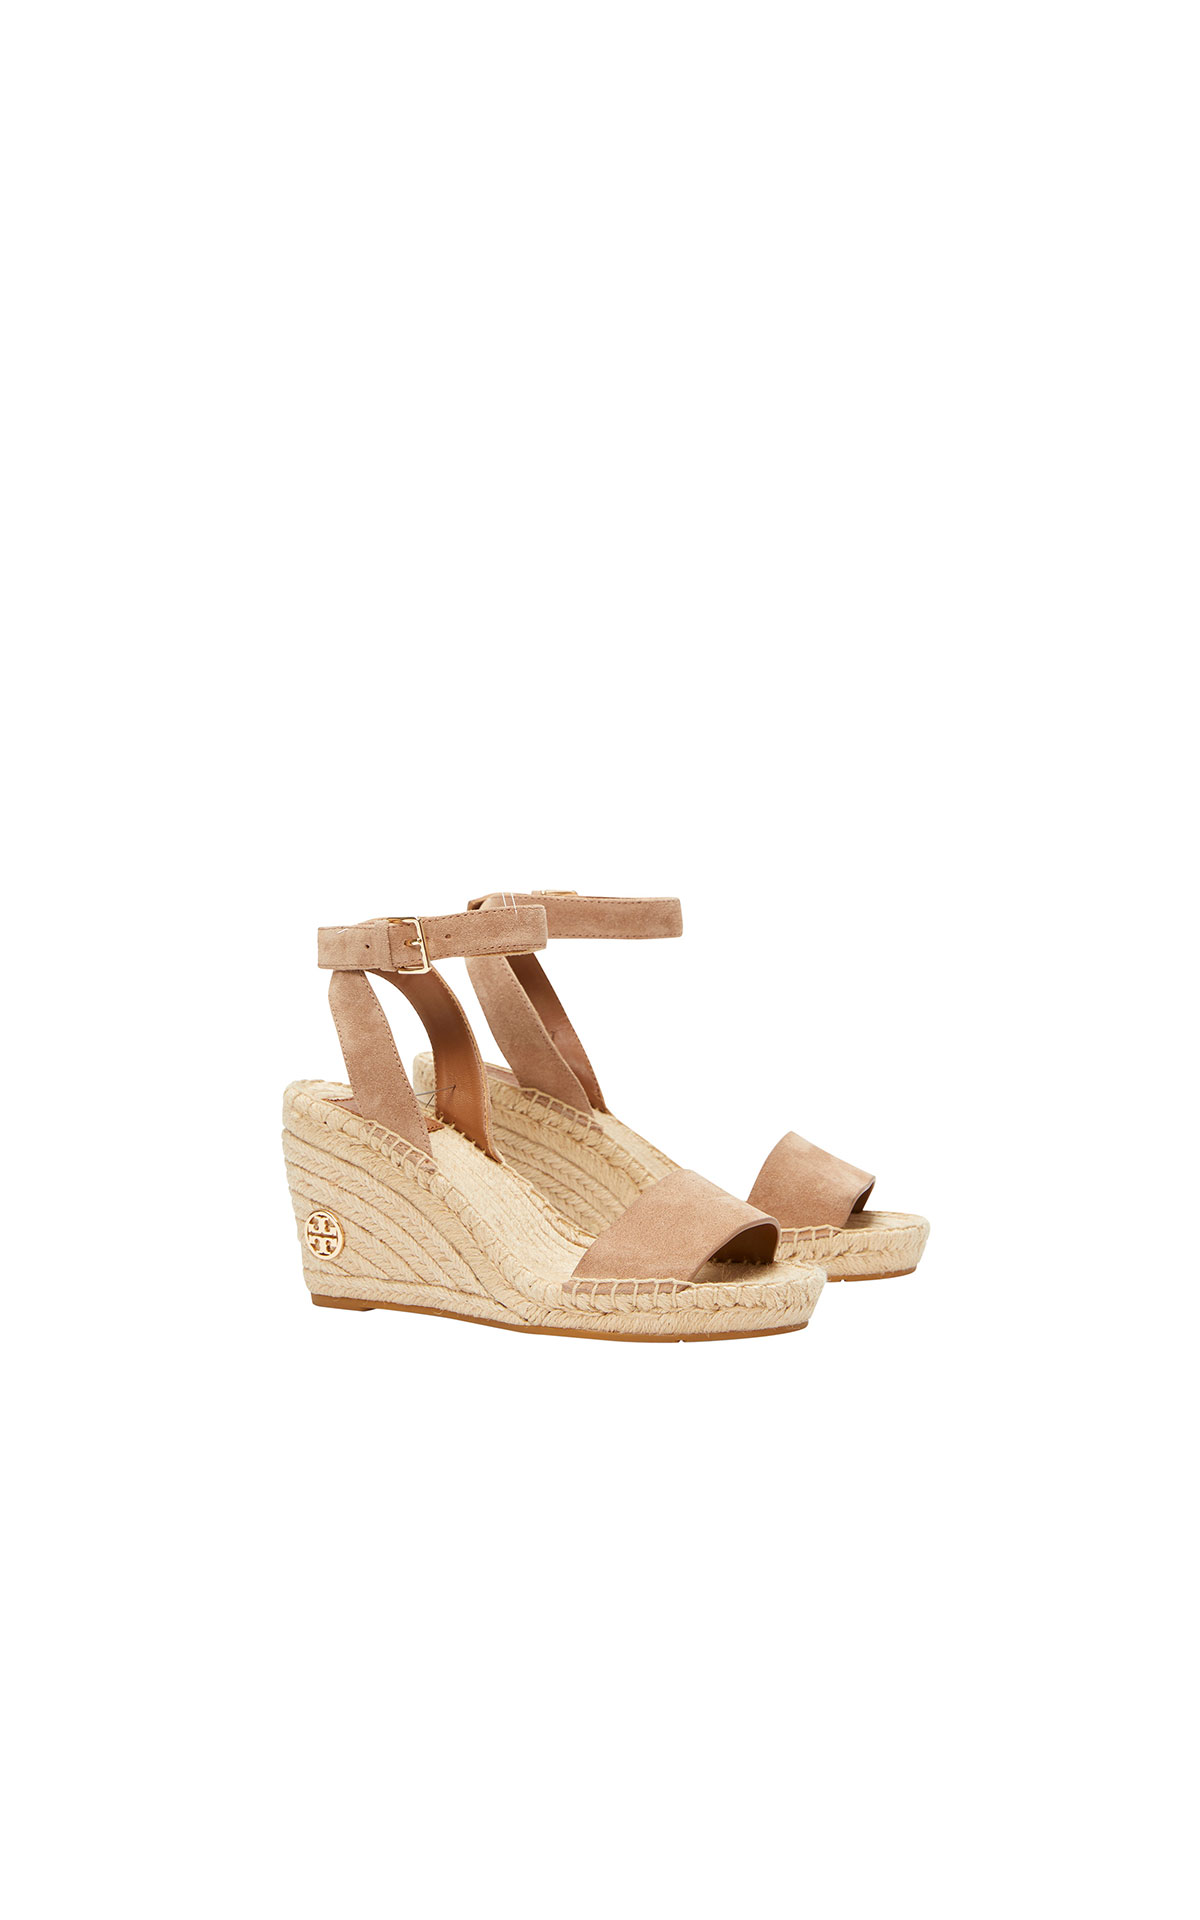 Tory Burch Laurel 90mm wedge espadrille from Bicester Village